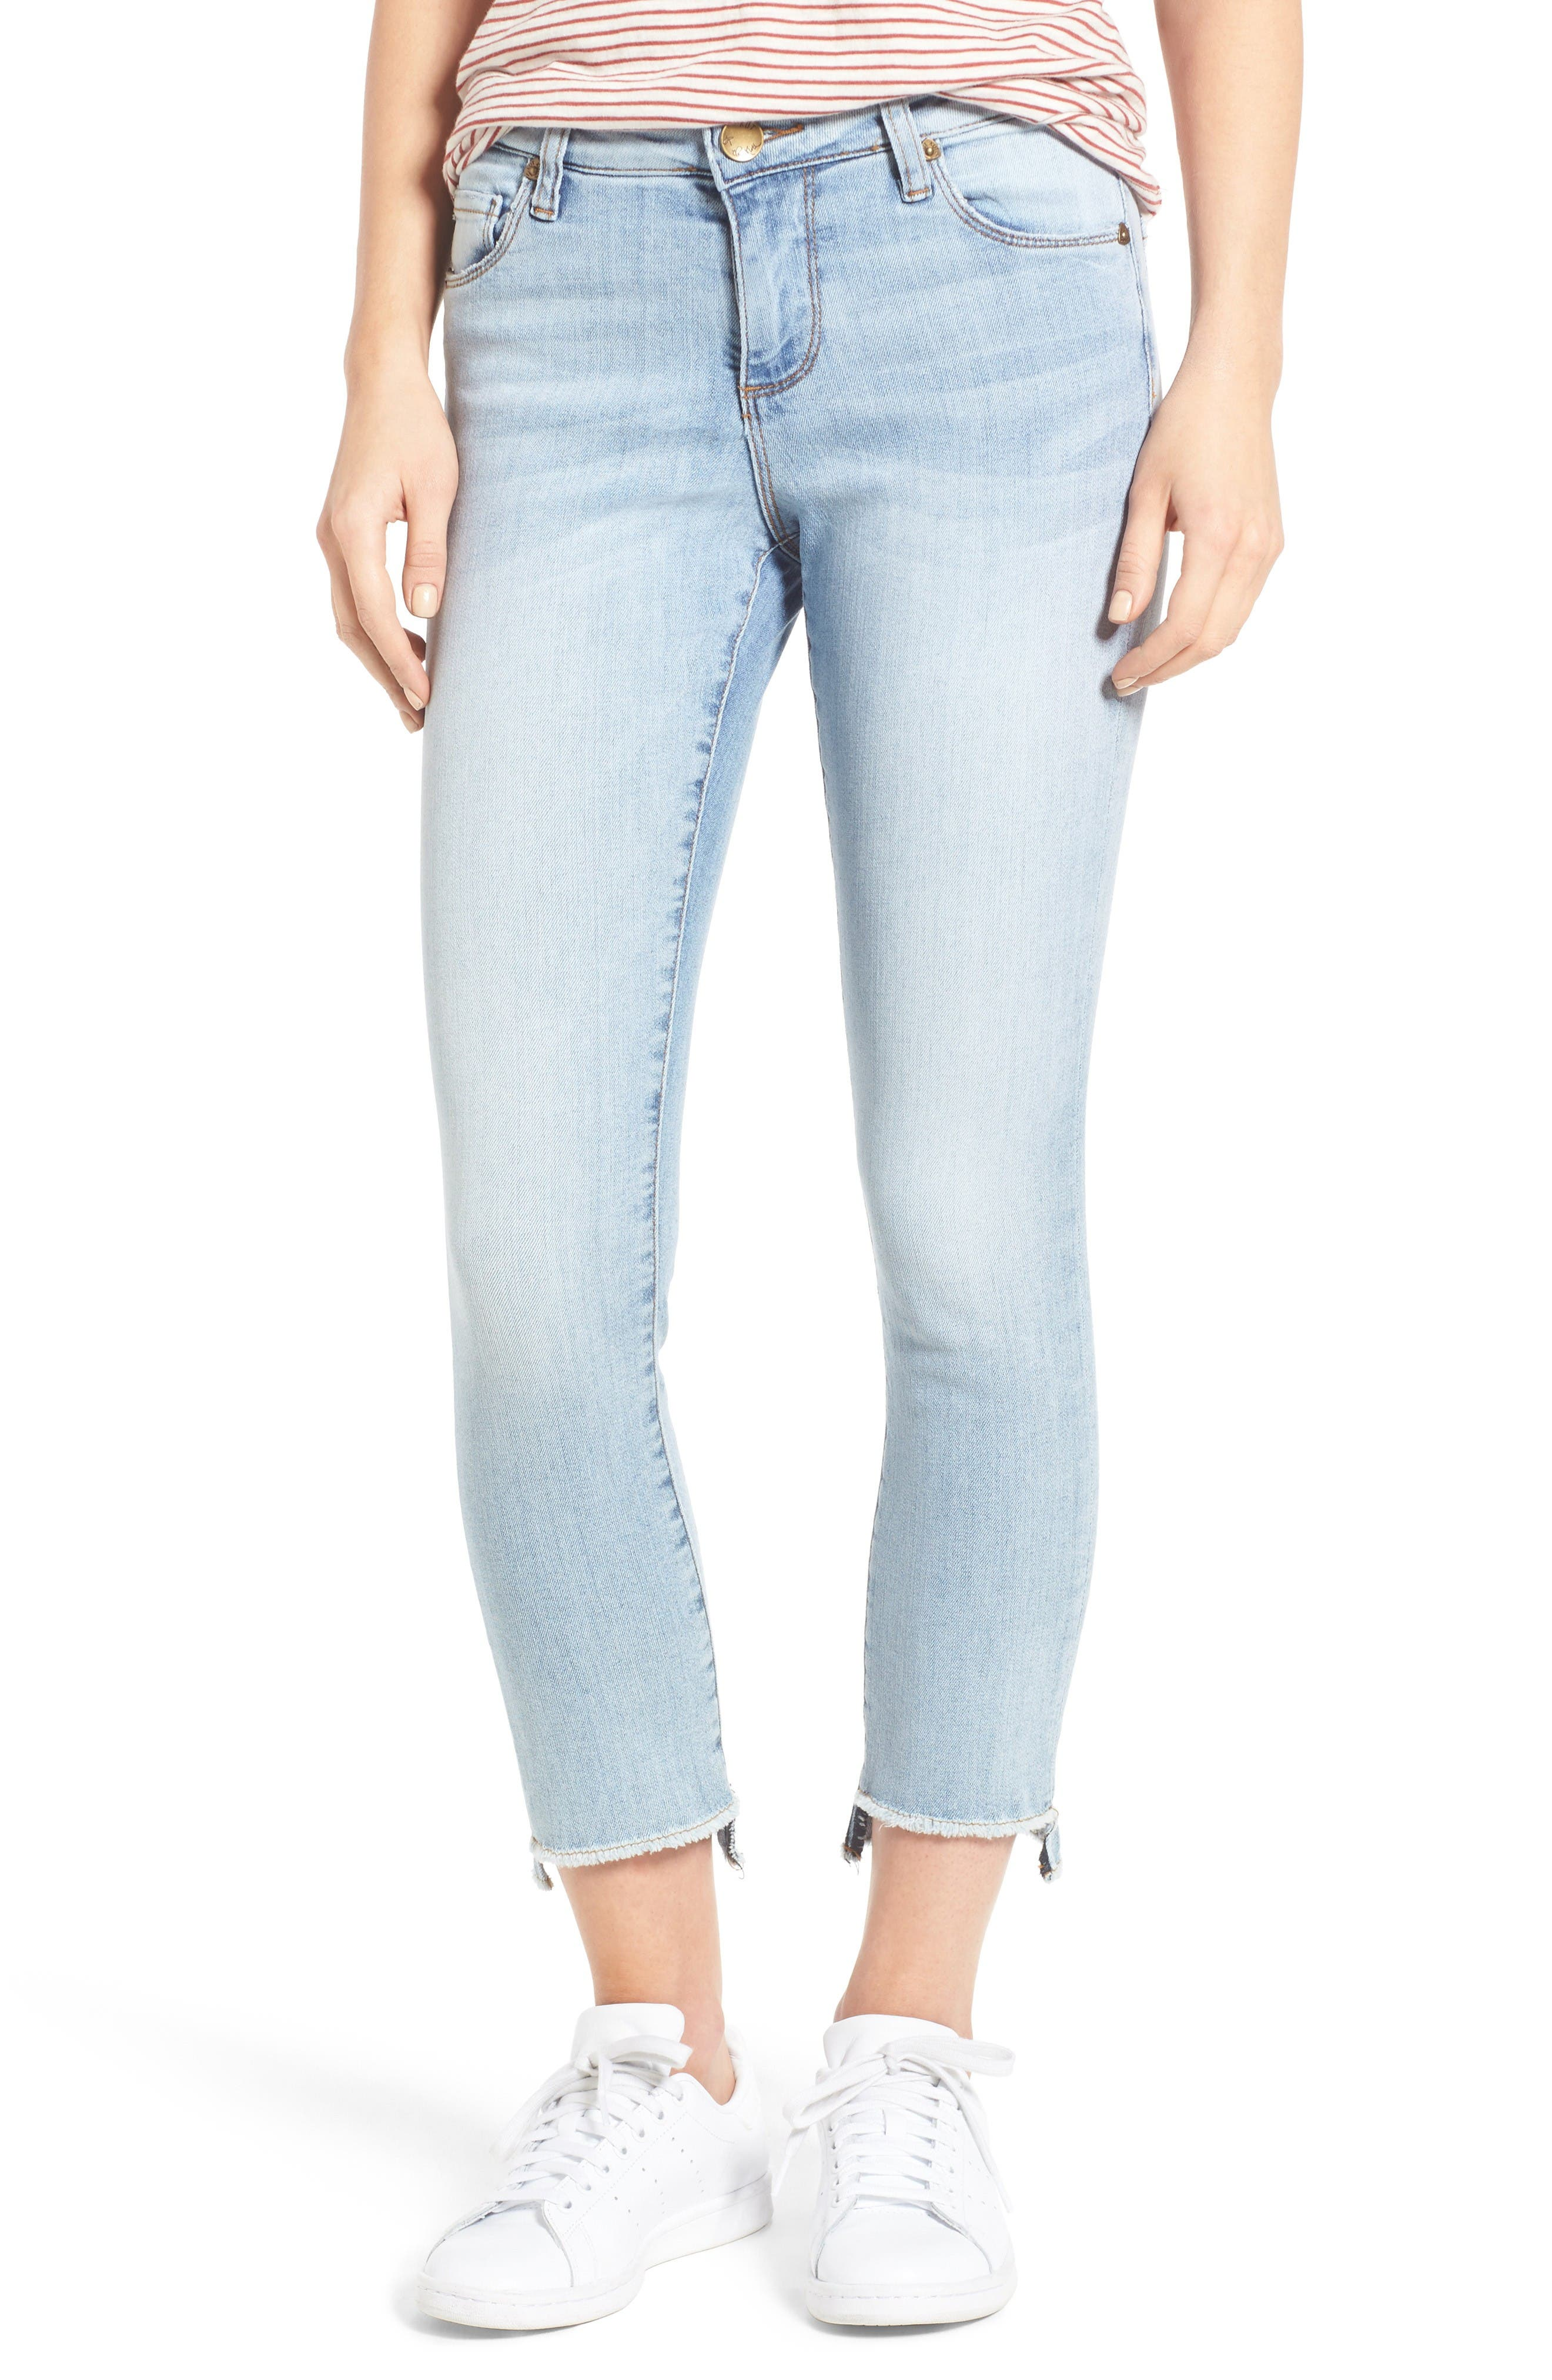 Main Image - KUT from the Kloth Reese Uneven Hem Straight Ankle Jeans (Celebratory)